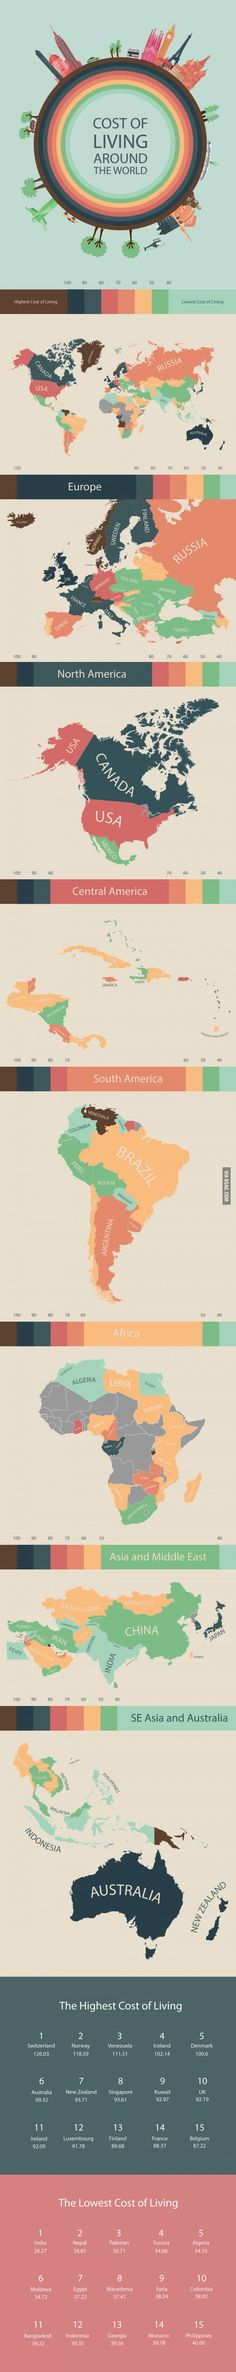 Highest costs of living in the world